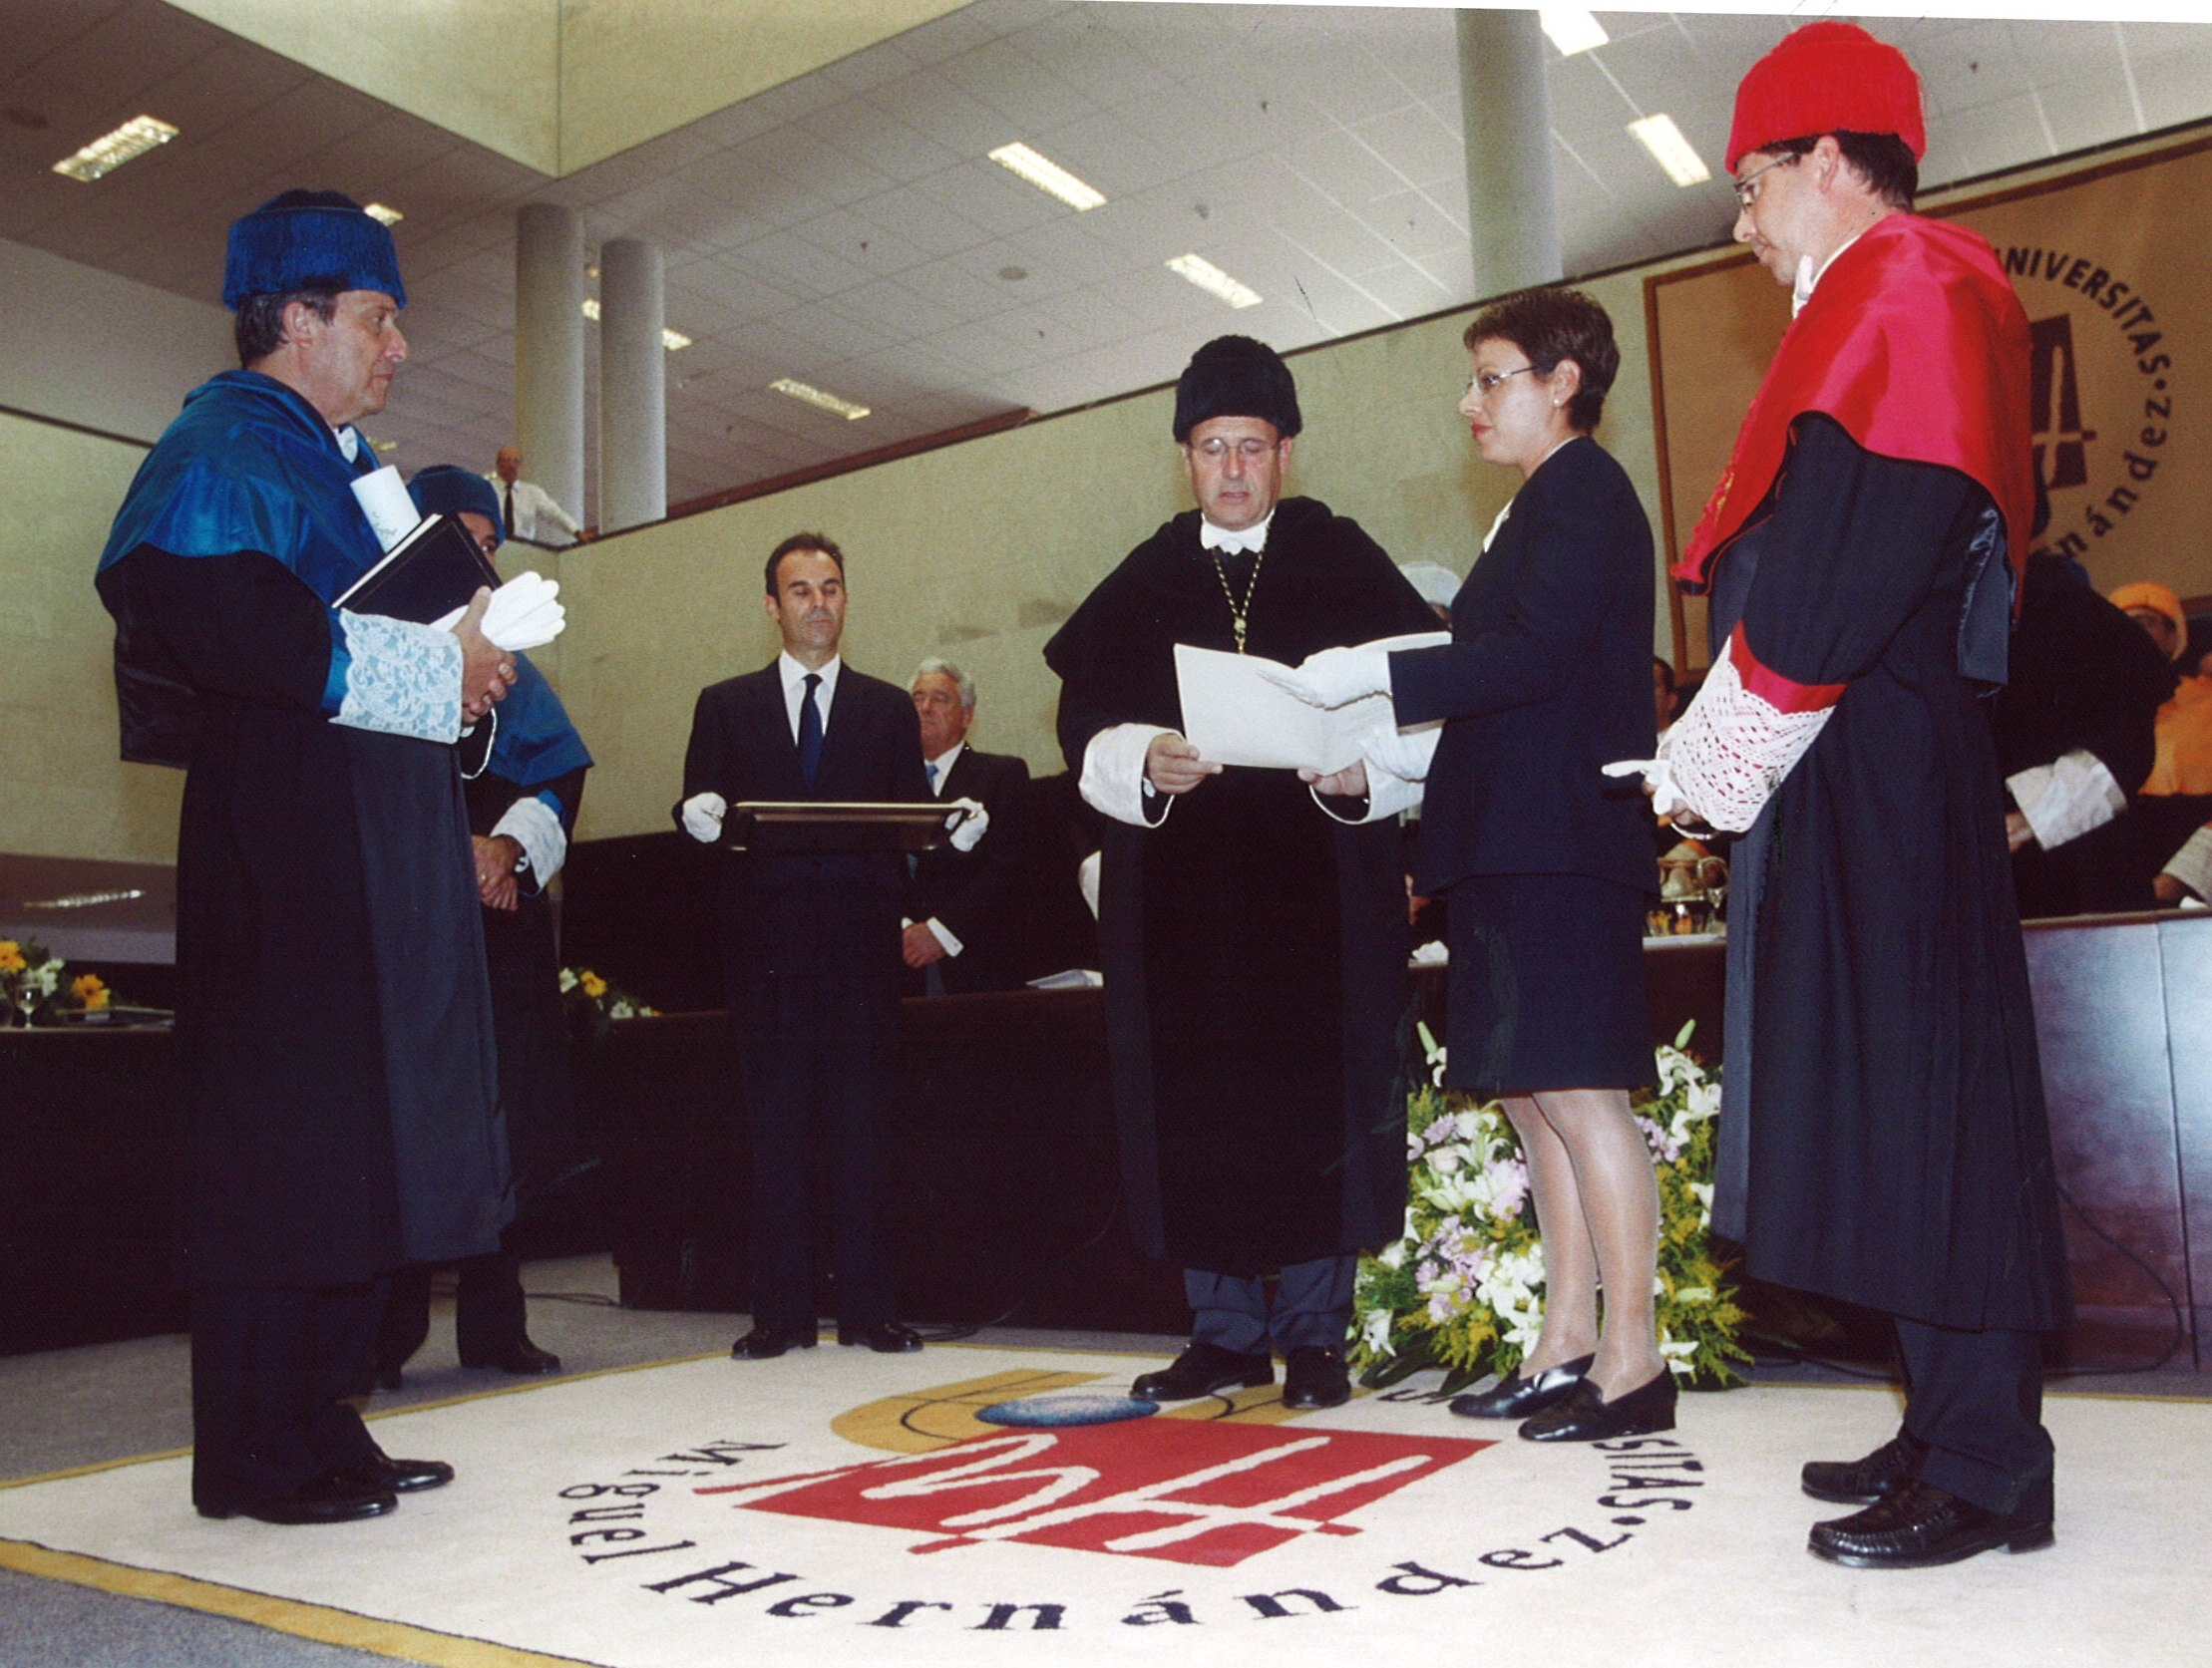 08-dhc-mayor-zaragoza.jpg